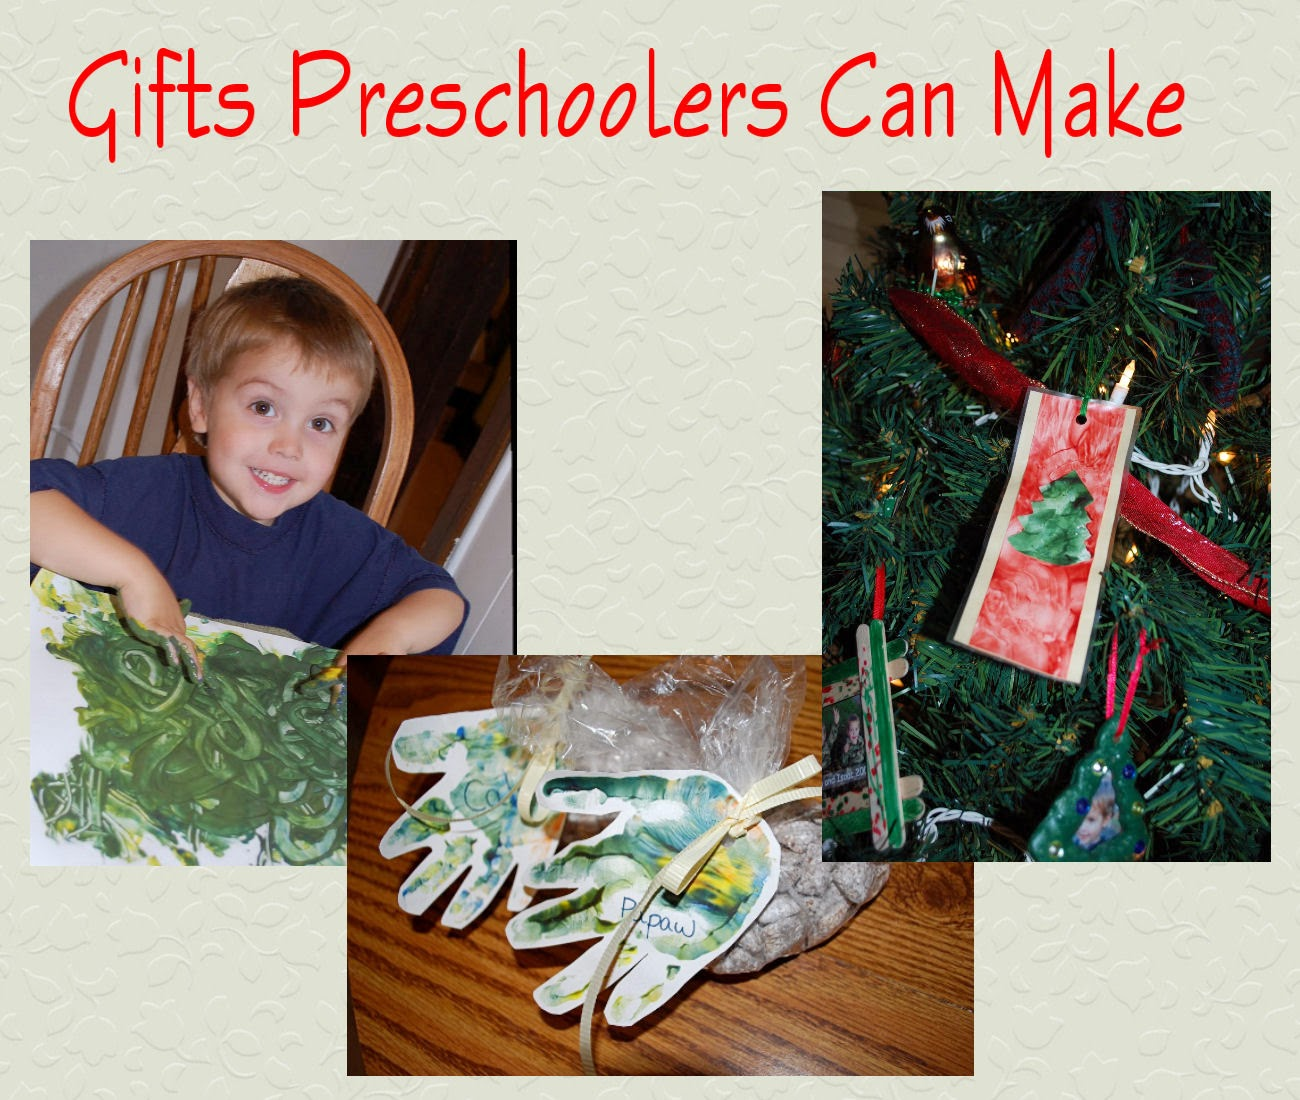 Leading them to the rock christmas gifts preschoolers for Gifts u can make